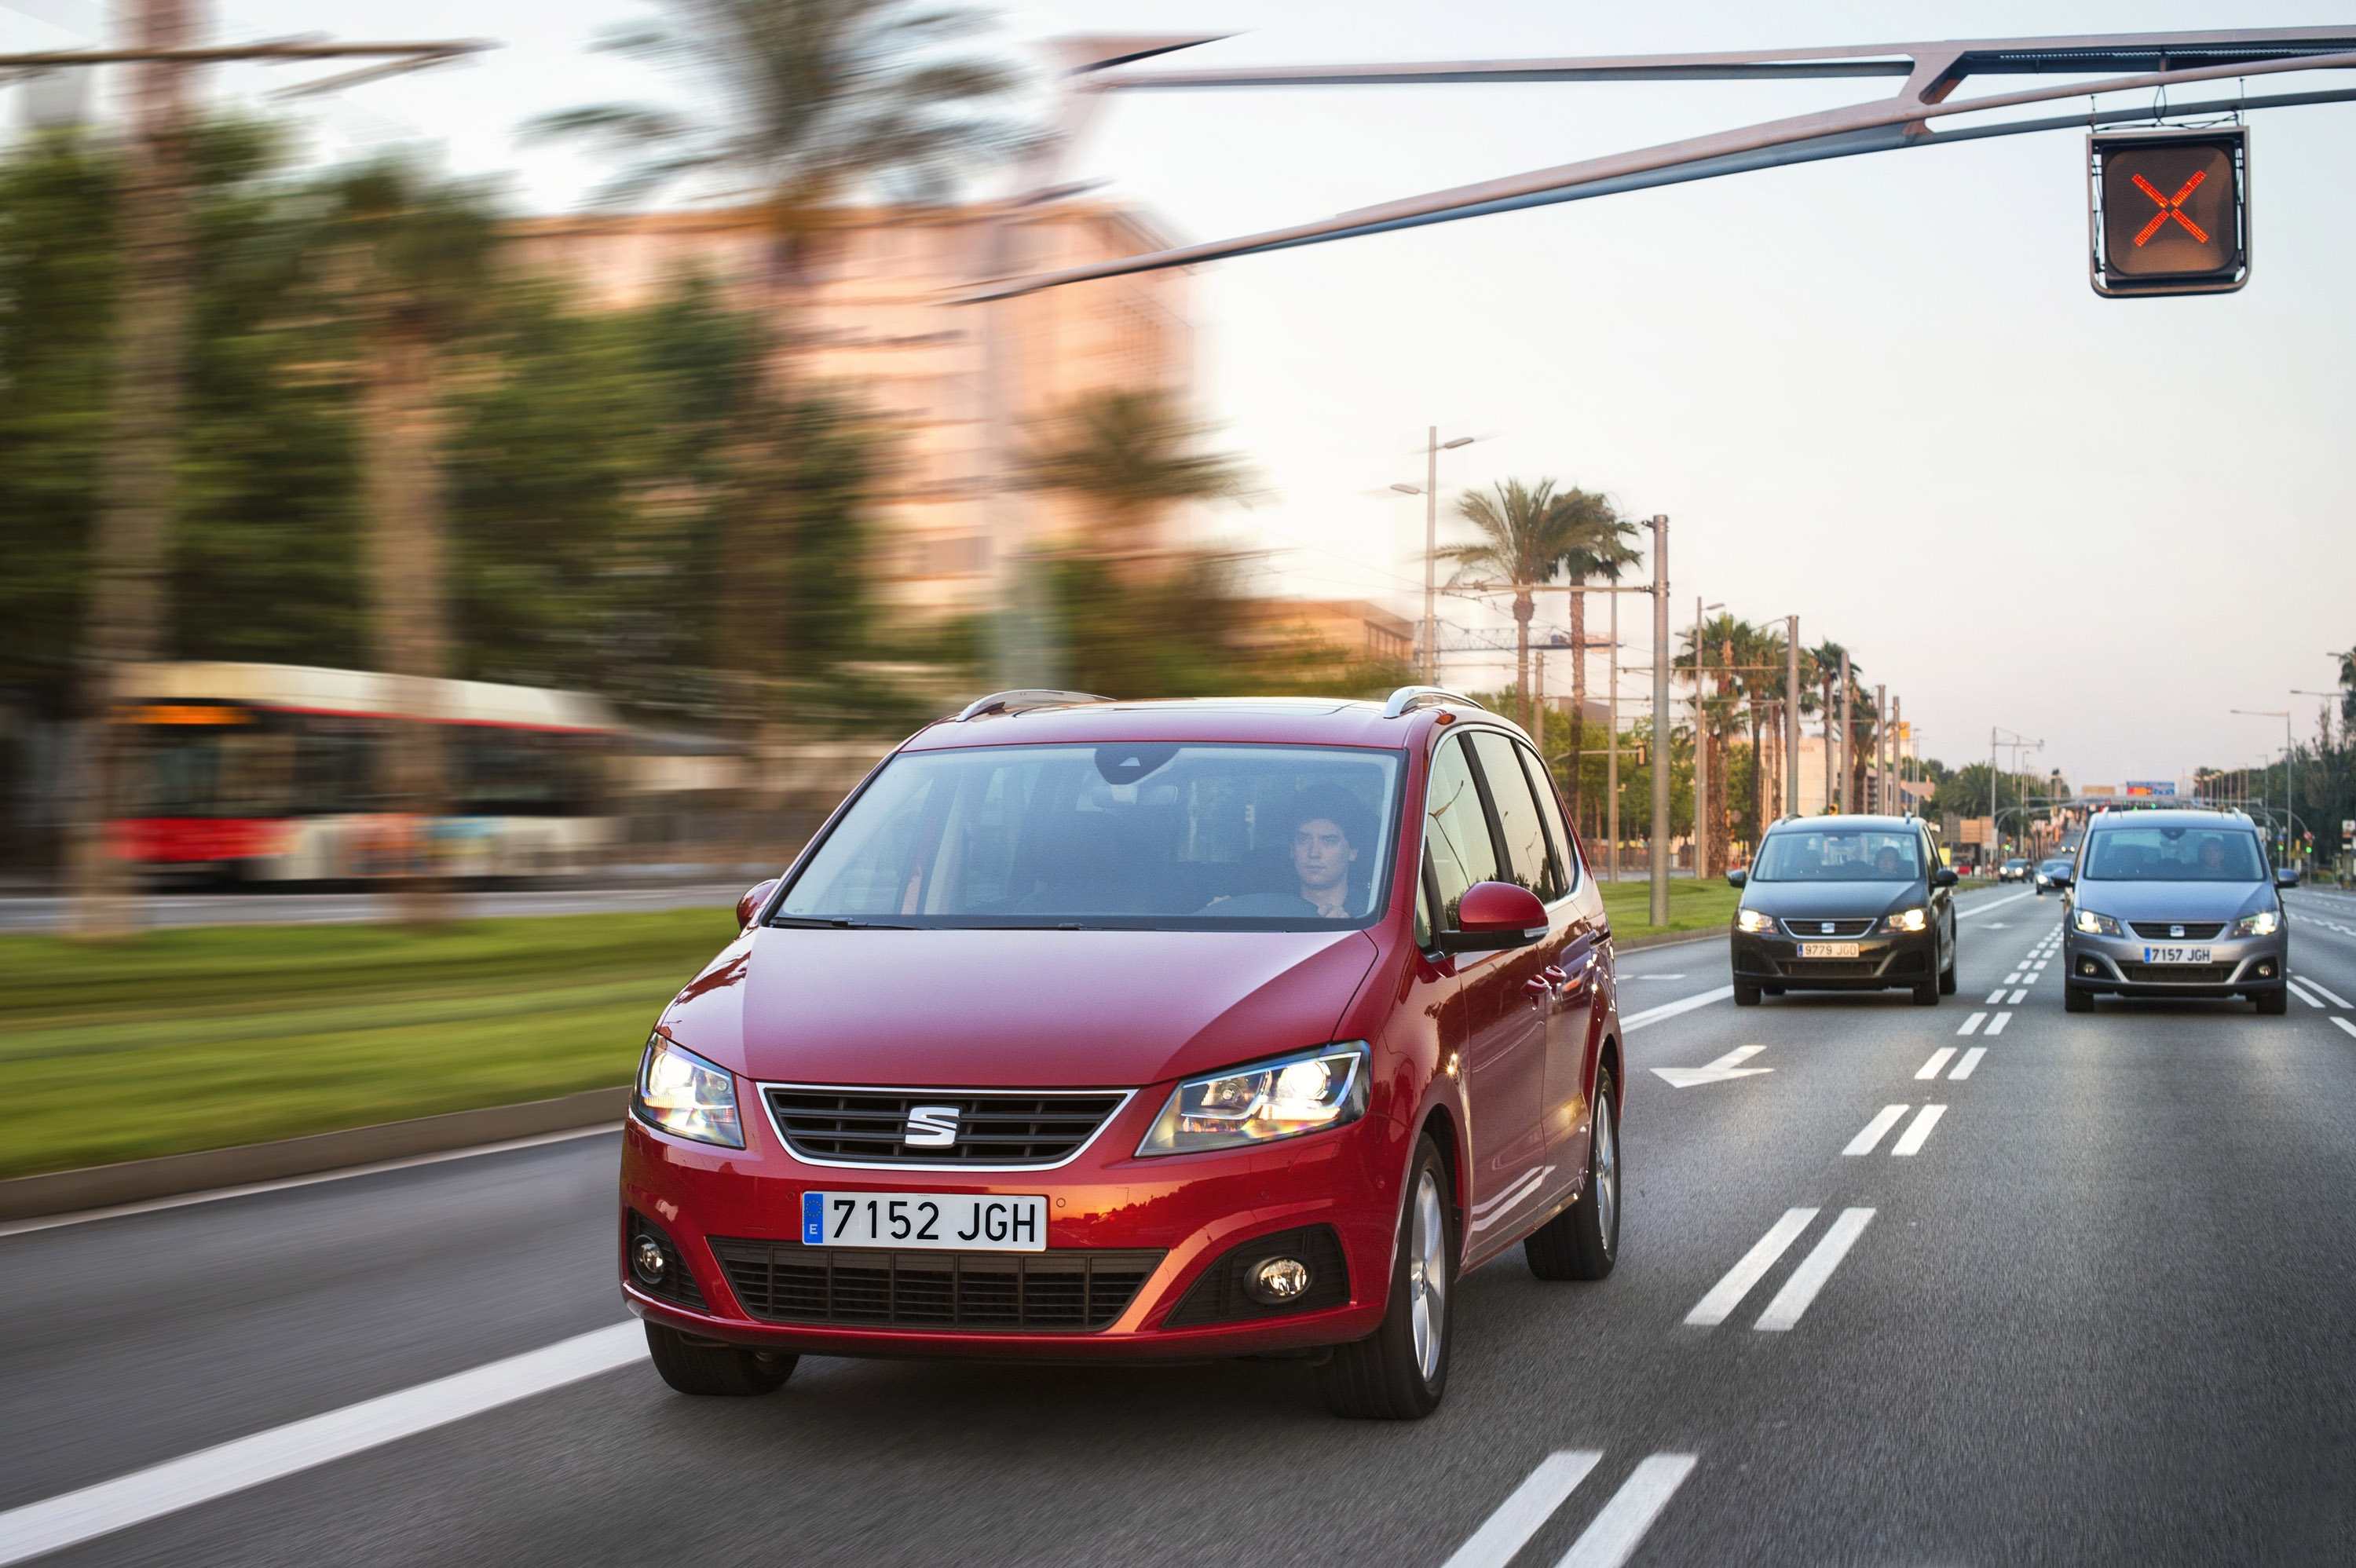 2016 Seat Alhambra thumbnail photo 92691